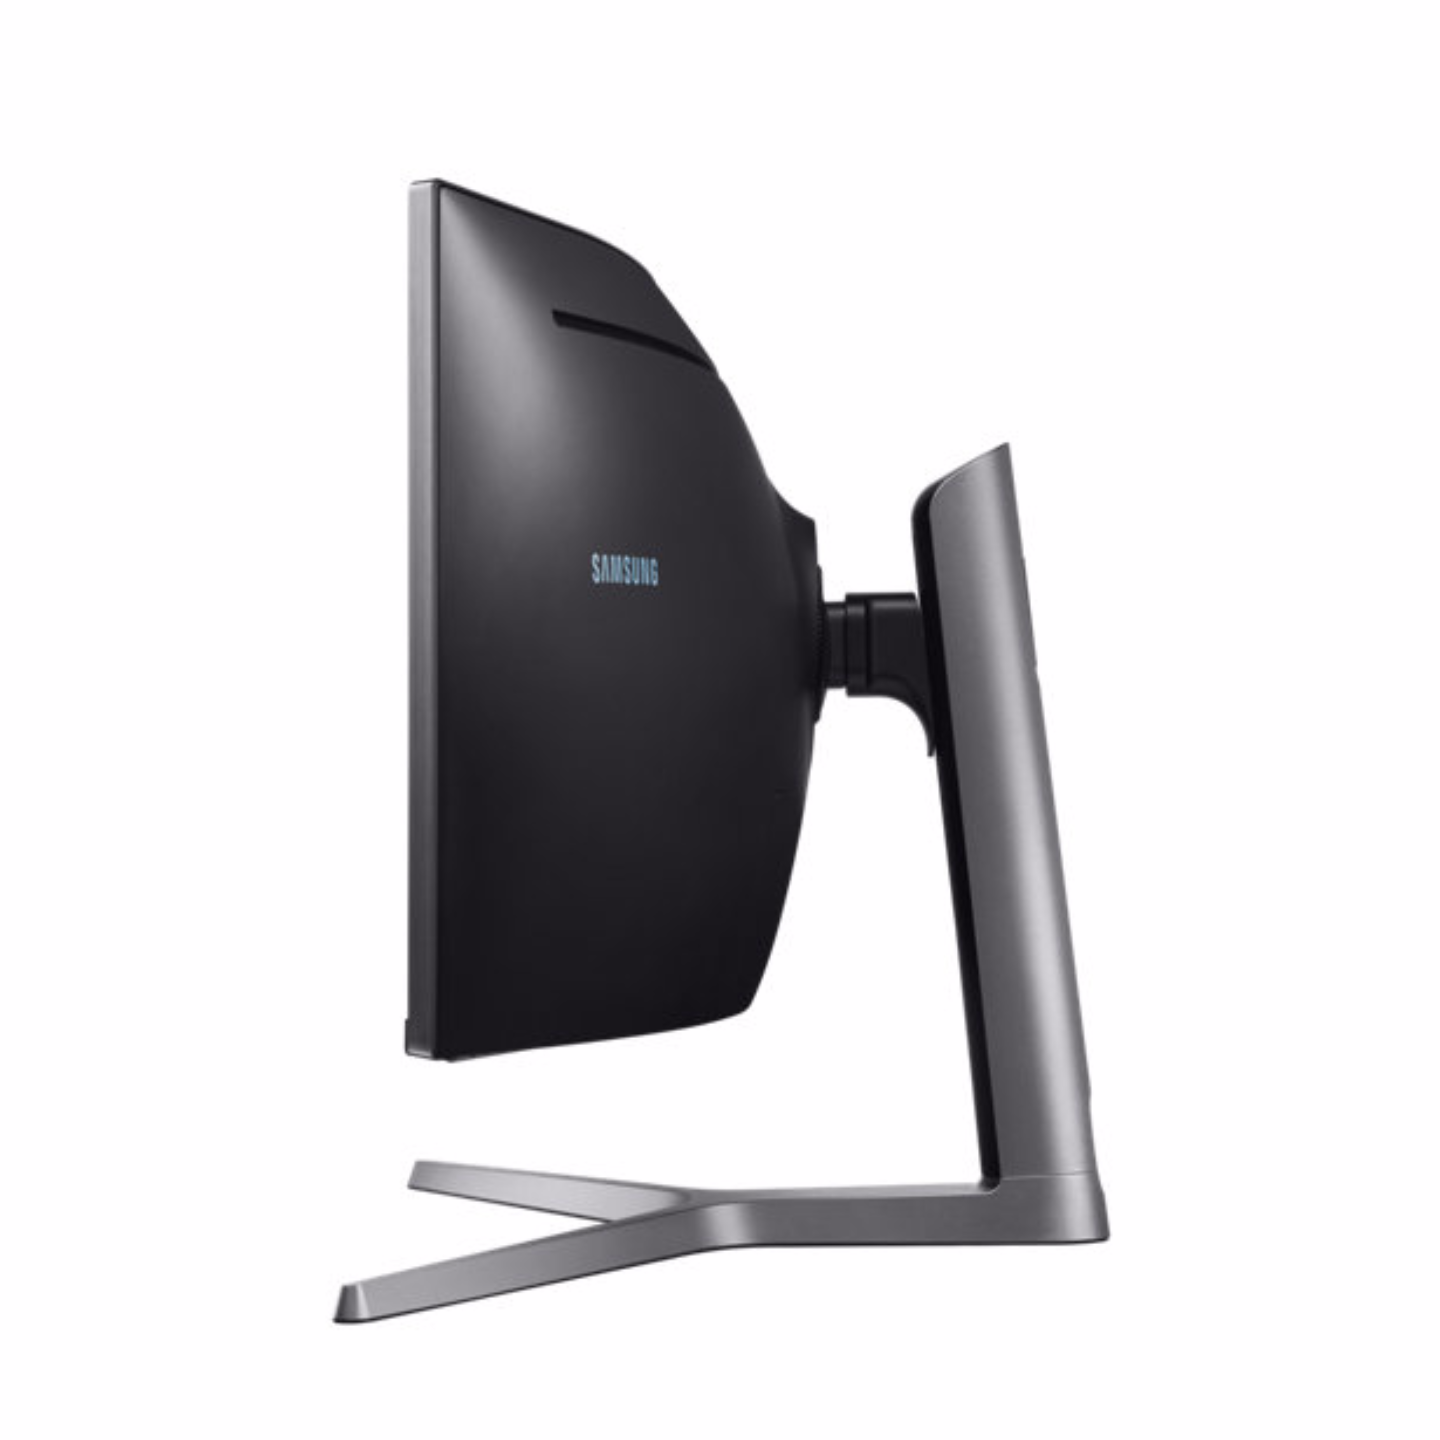 "Samsung 49"" QLED Gaming Monitor with 32:9 Super Ultra-Wide Screen (Model : LC49HG90DMEXXS)"